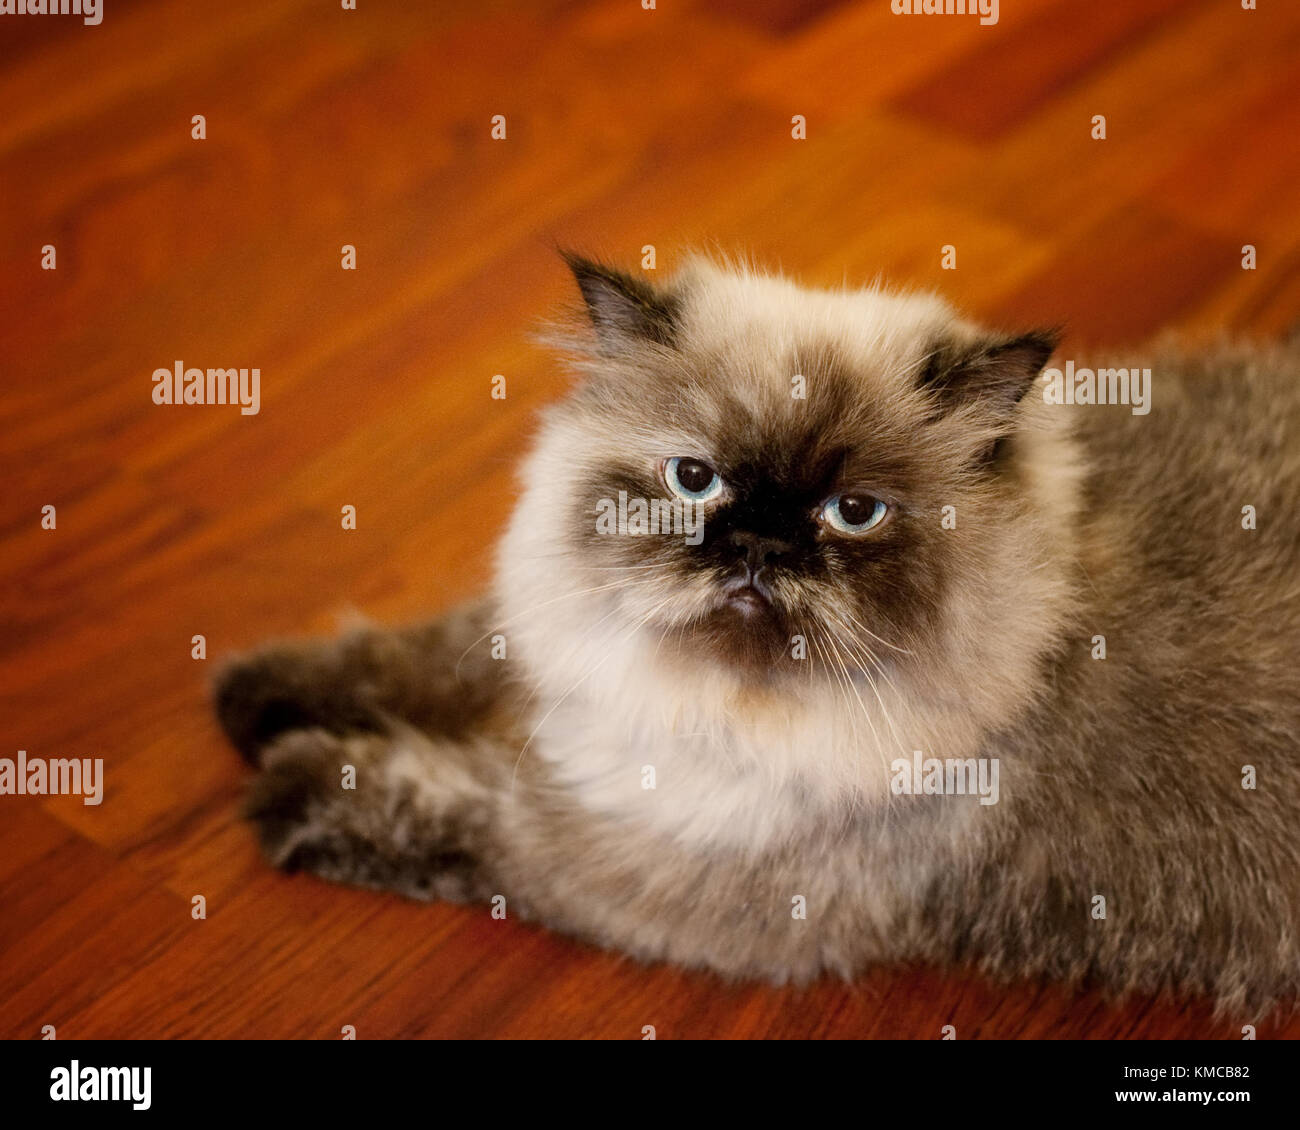 Portrait of Himalayan cat - Stock Image